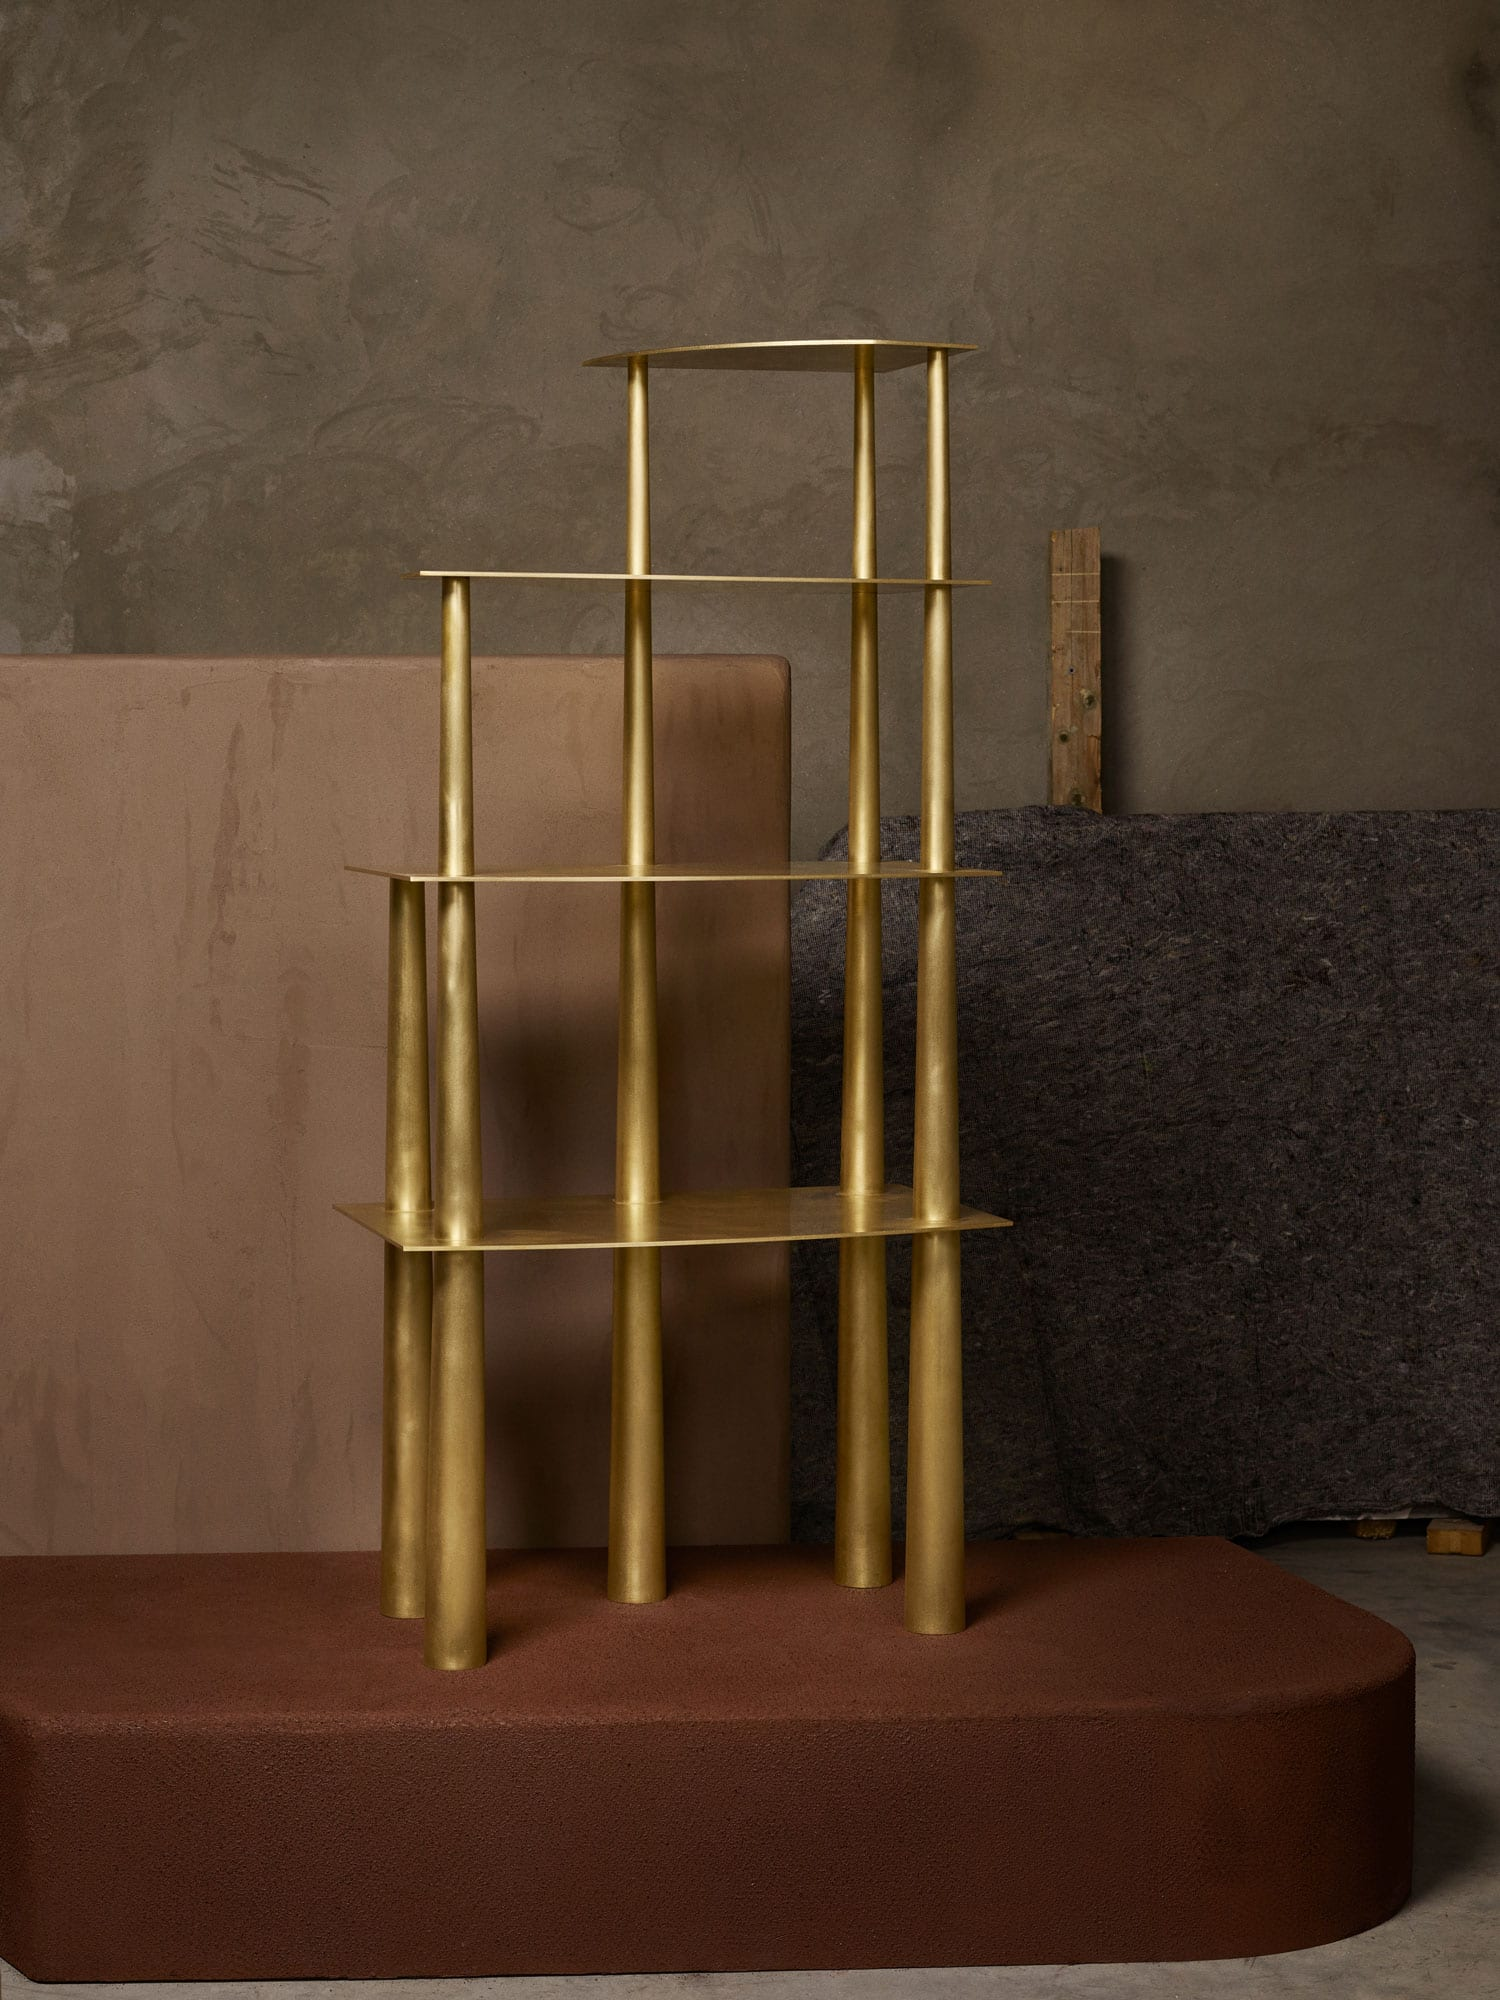 Collective Brut Explores Bodem Limited Edition Furniture Collection Linde Freya Tangelder Photo Alexander Popelier Yellowtrace 02